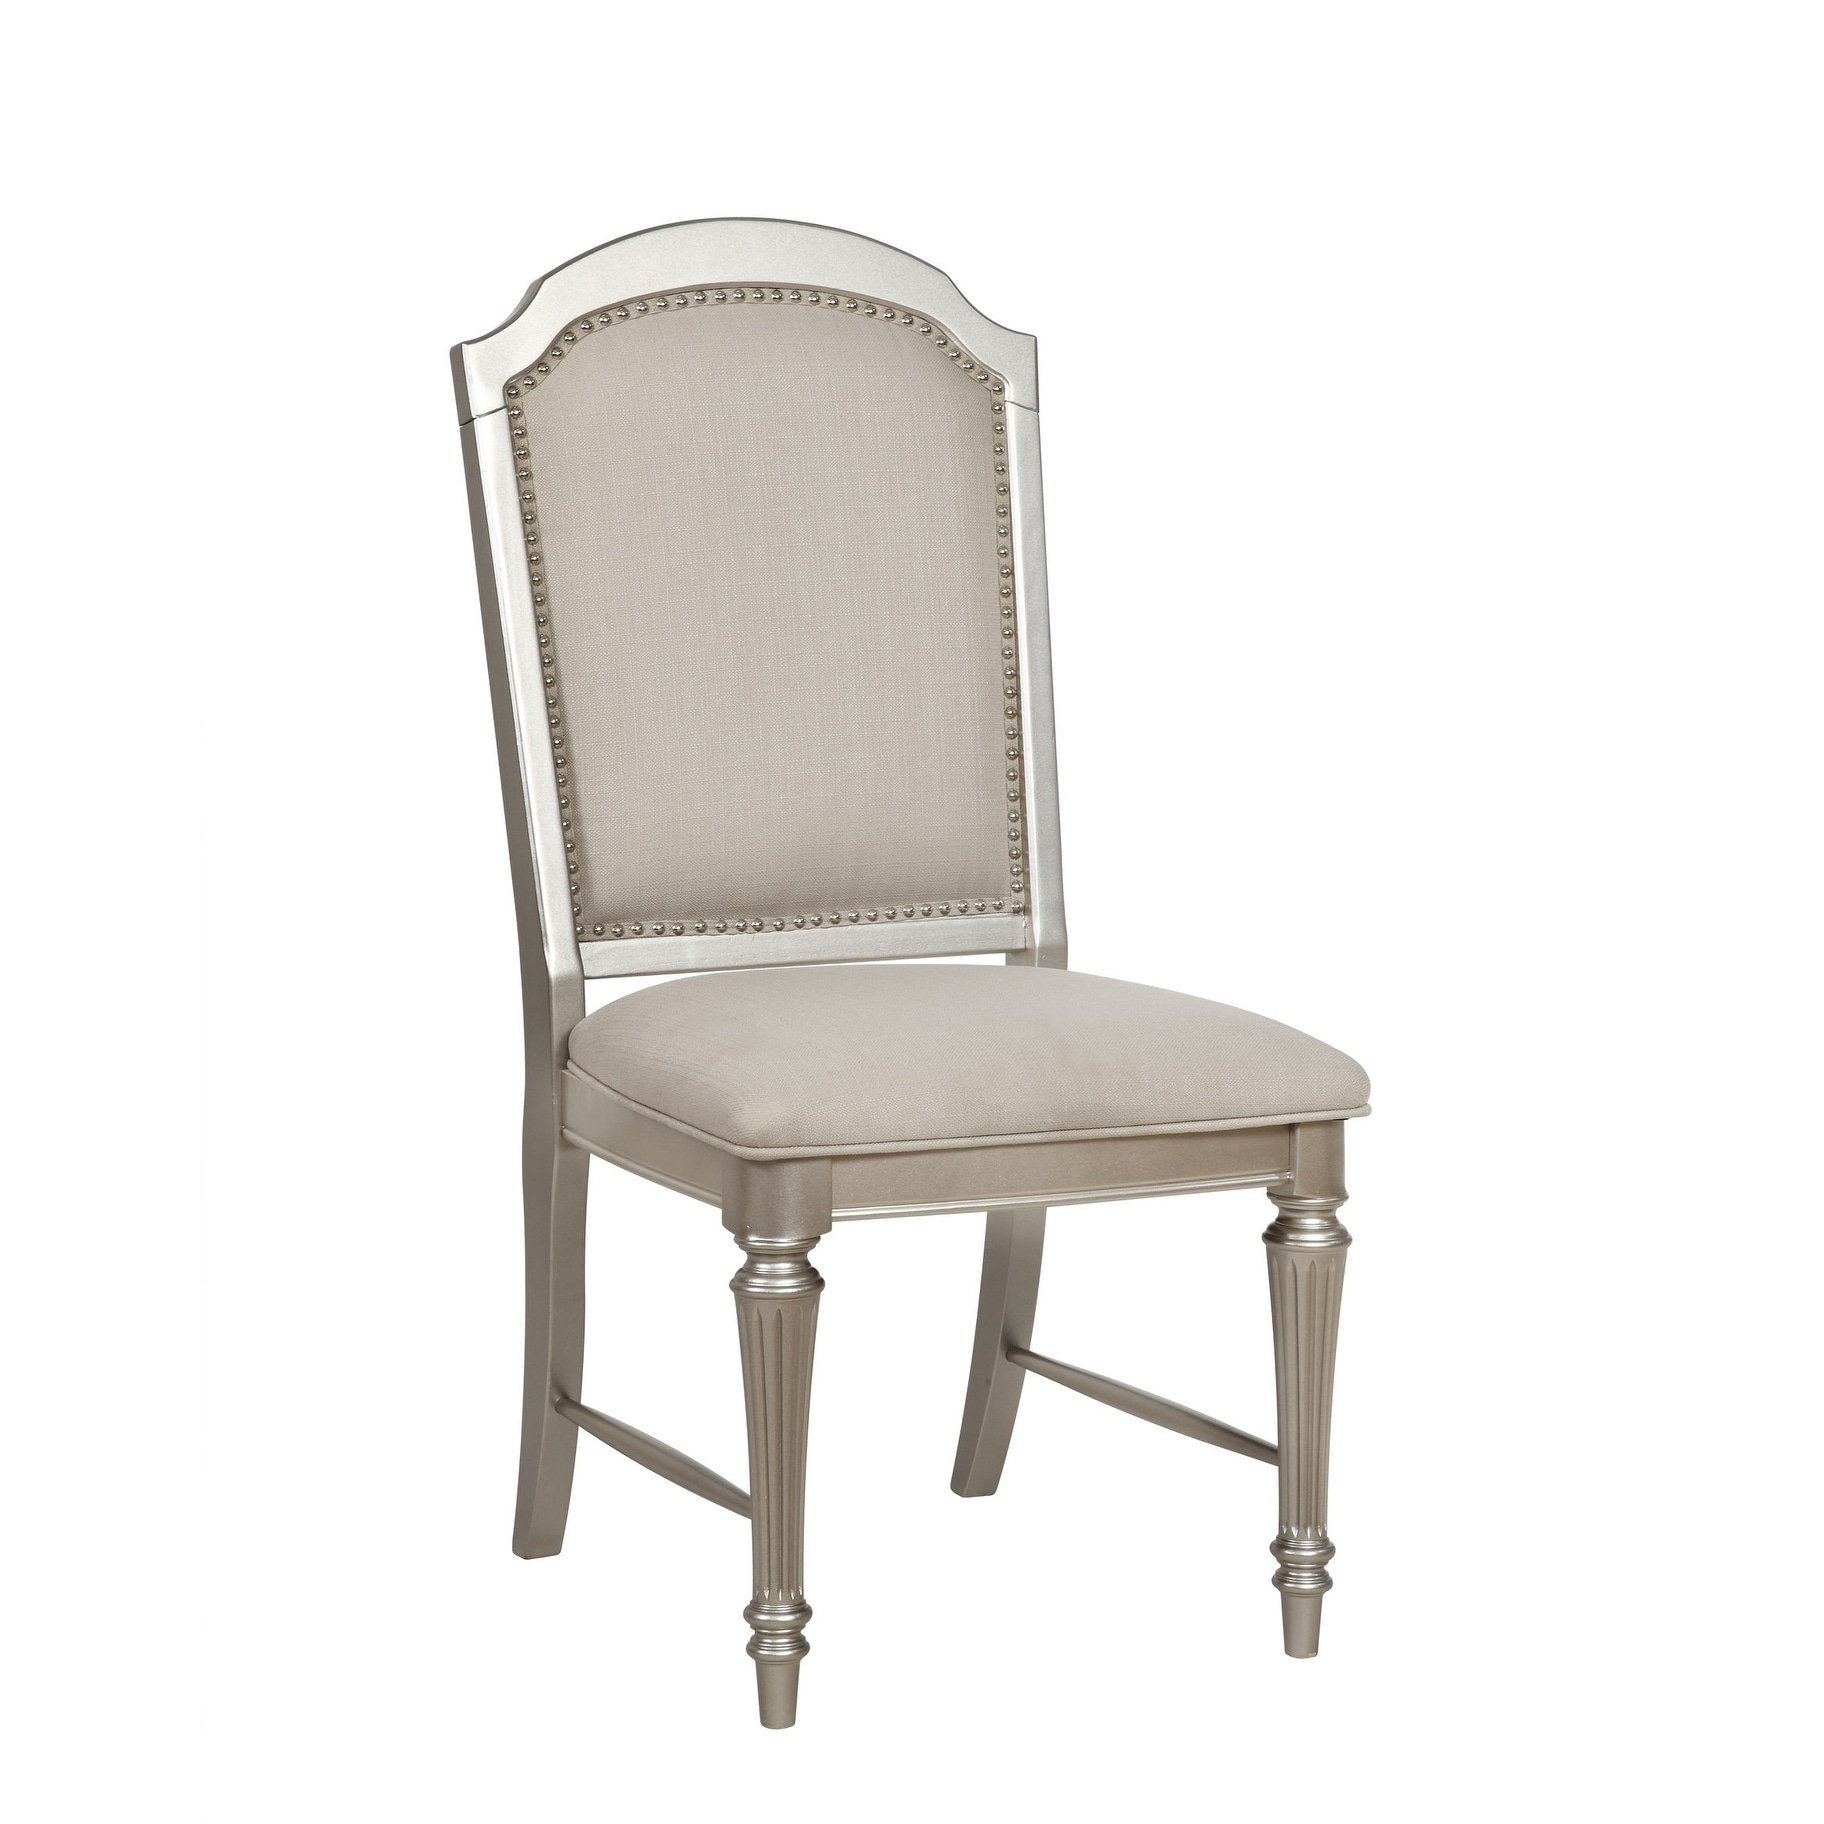 Park Ave Pearlized Platinum Dining Chair